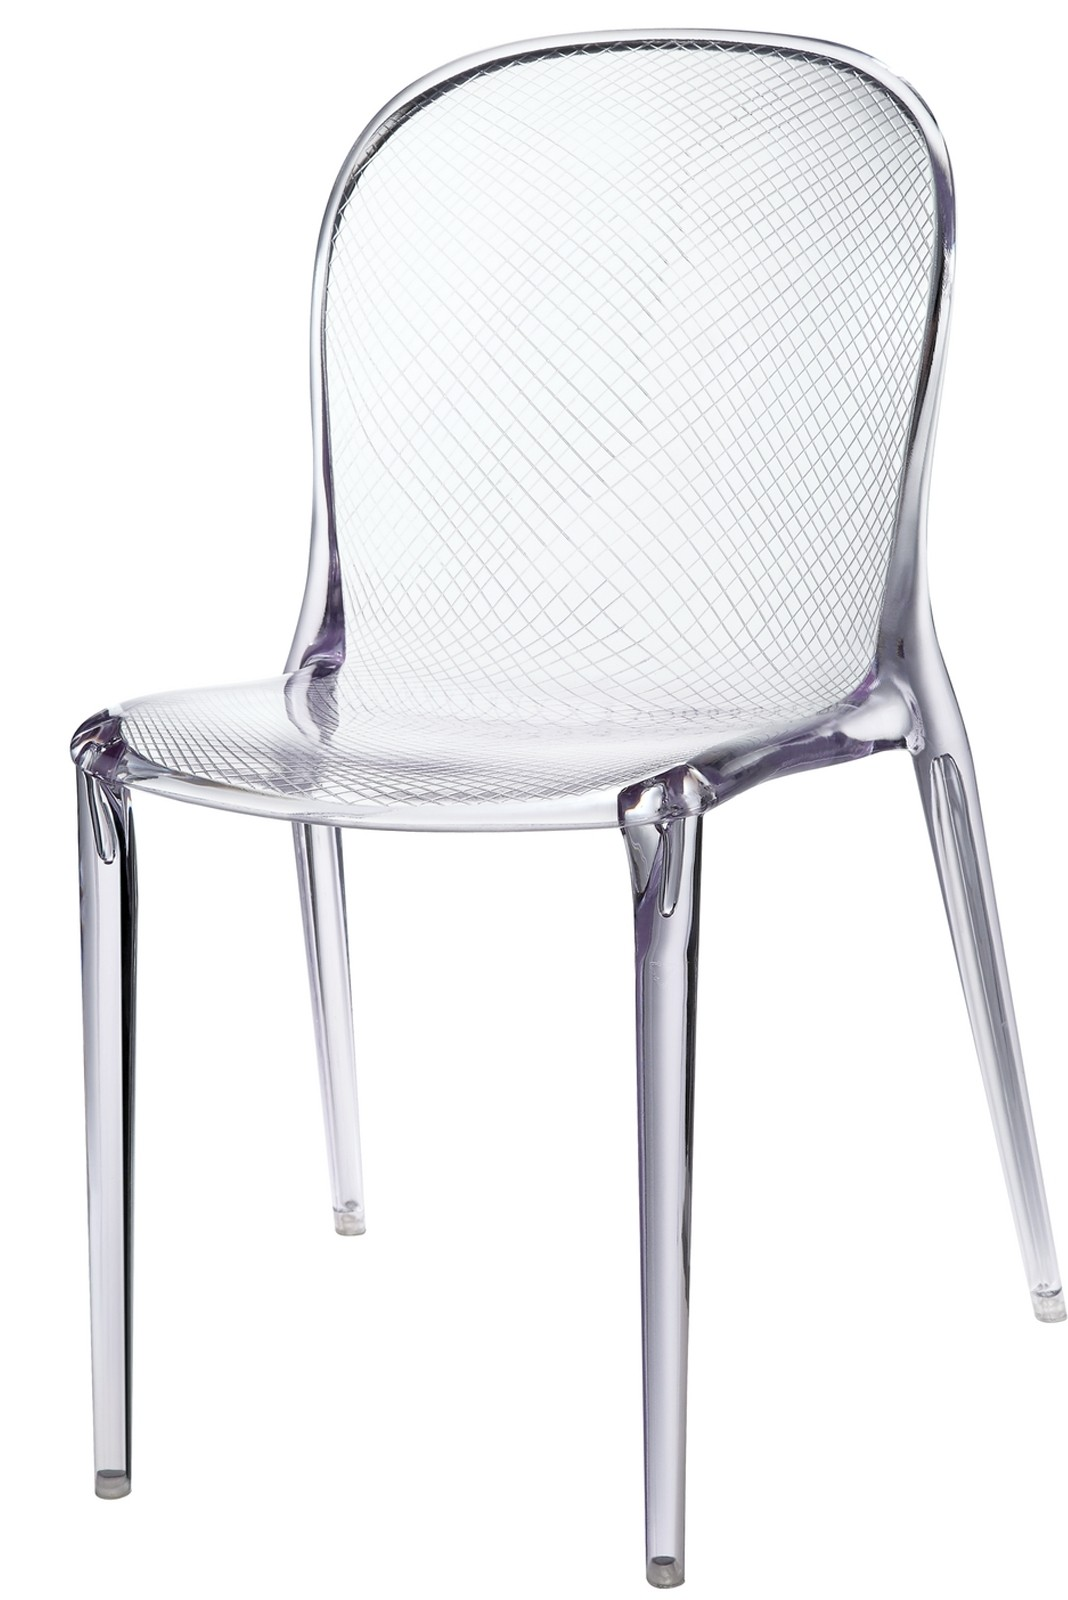 Scape Acrylic Translucent Chair From Renegade Eei 789